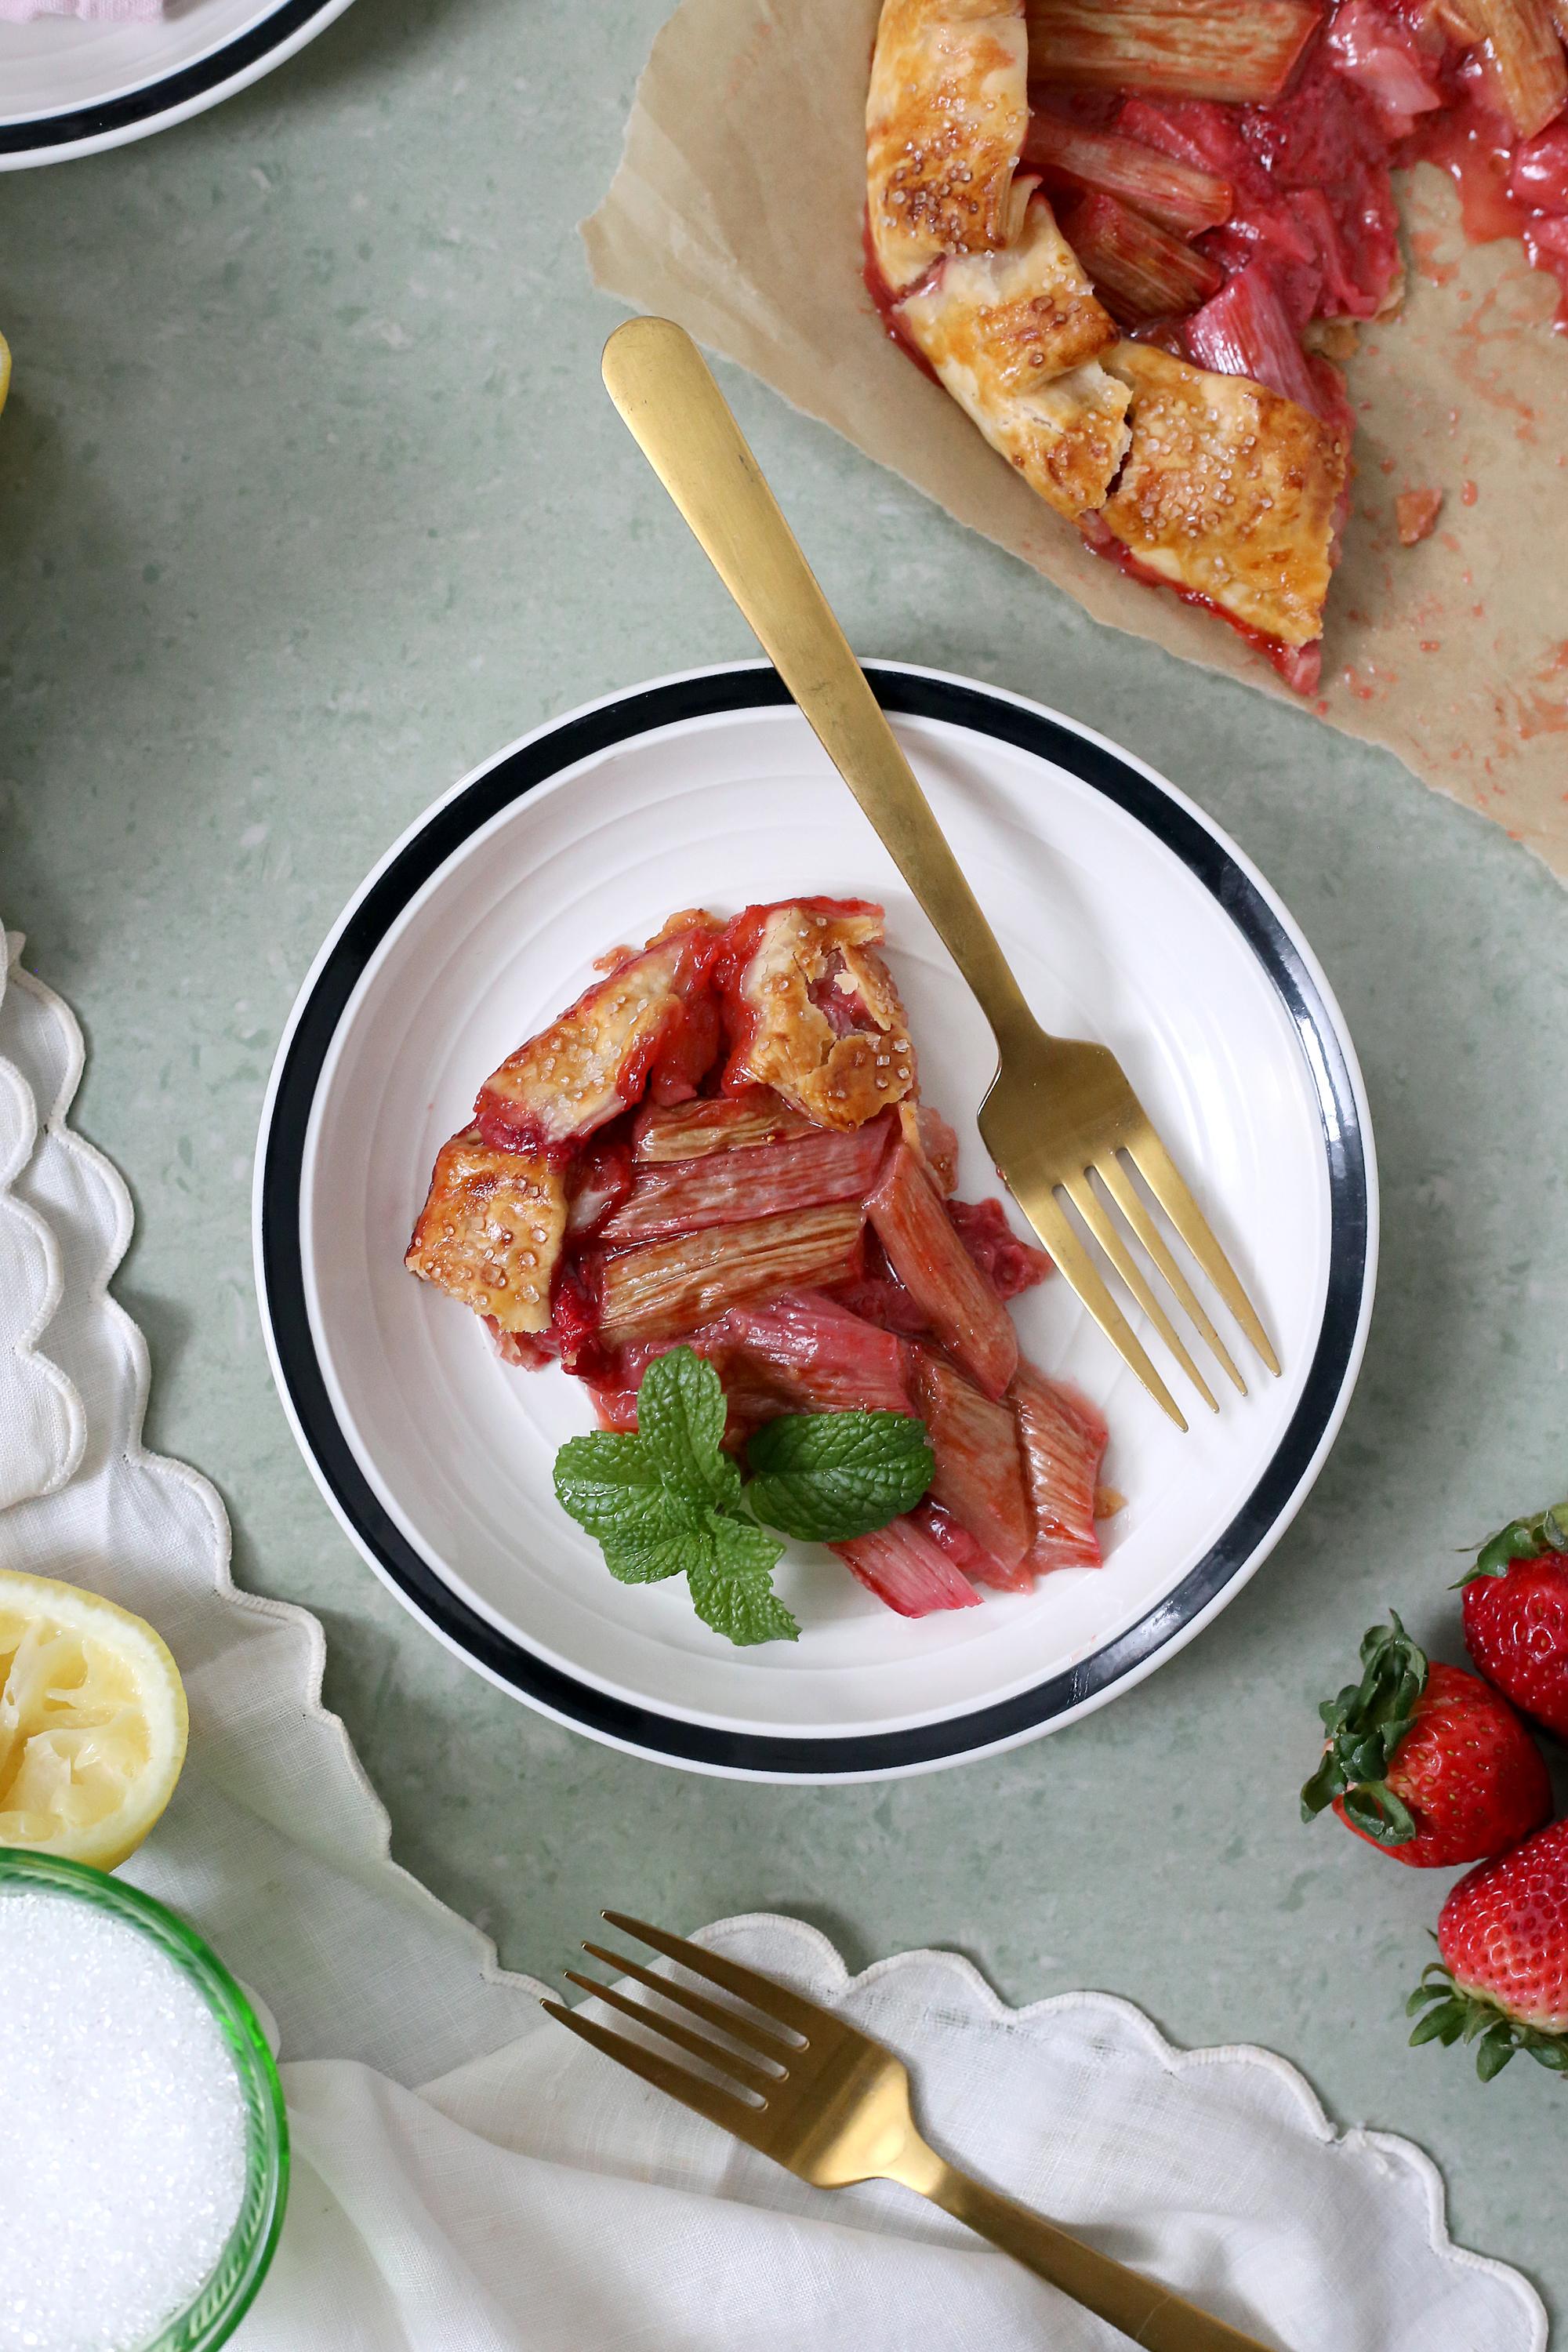 A slice of spring. Get the recipe for this Strawberry Rhubarb Galette via UnusuallyLovely.com